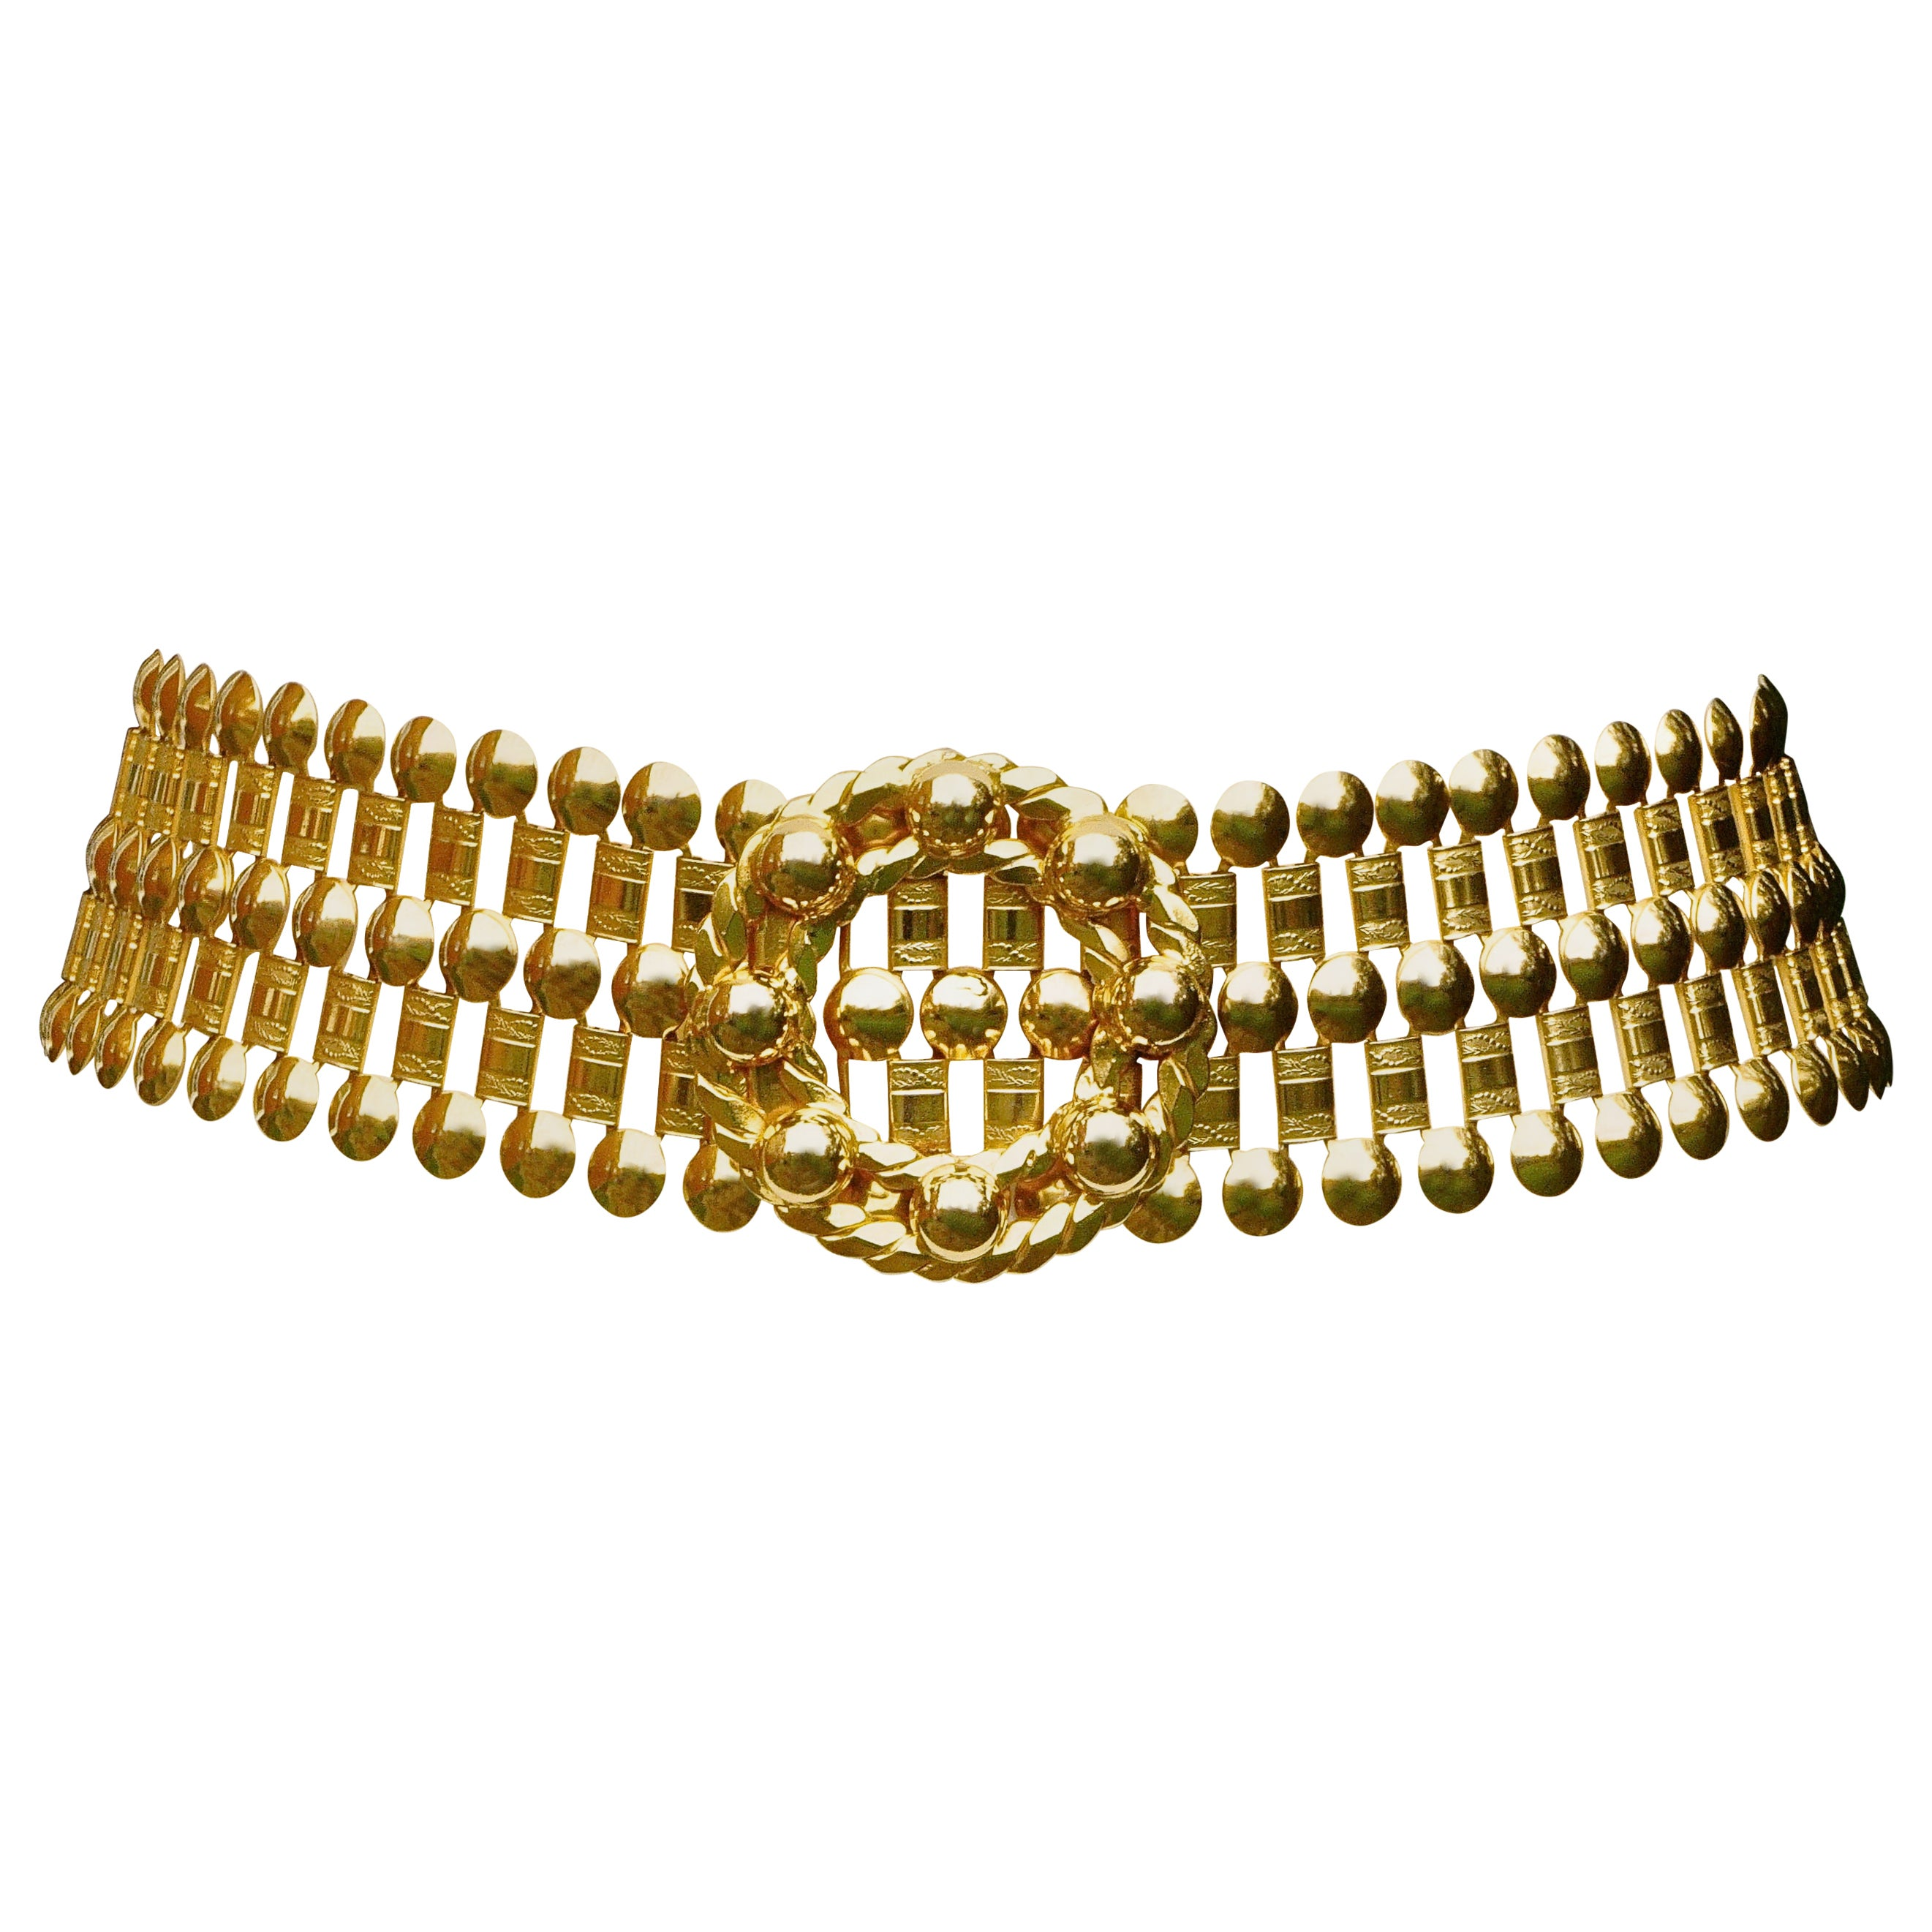 Heavy Wide Gold Plated Belt with a Circular Dome and Rope Twist Buckle